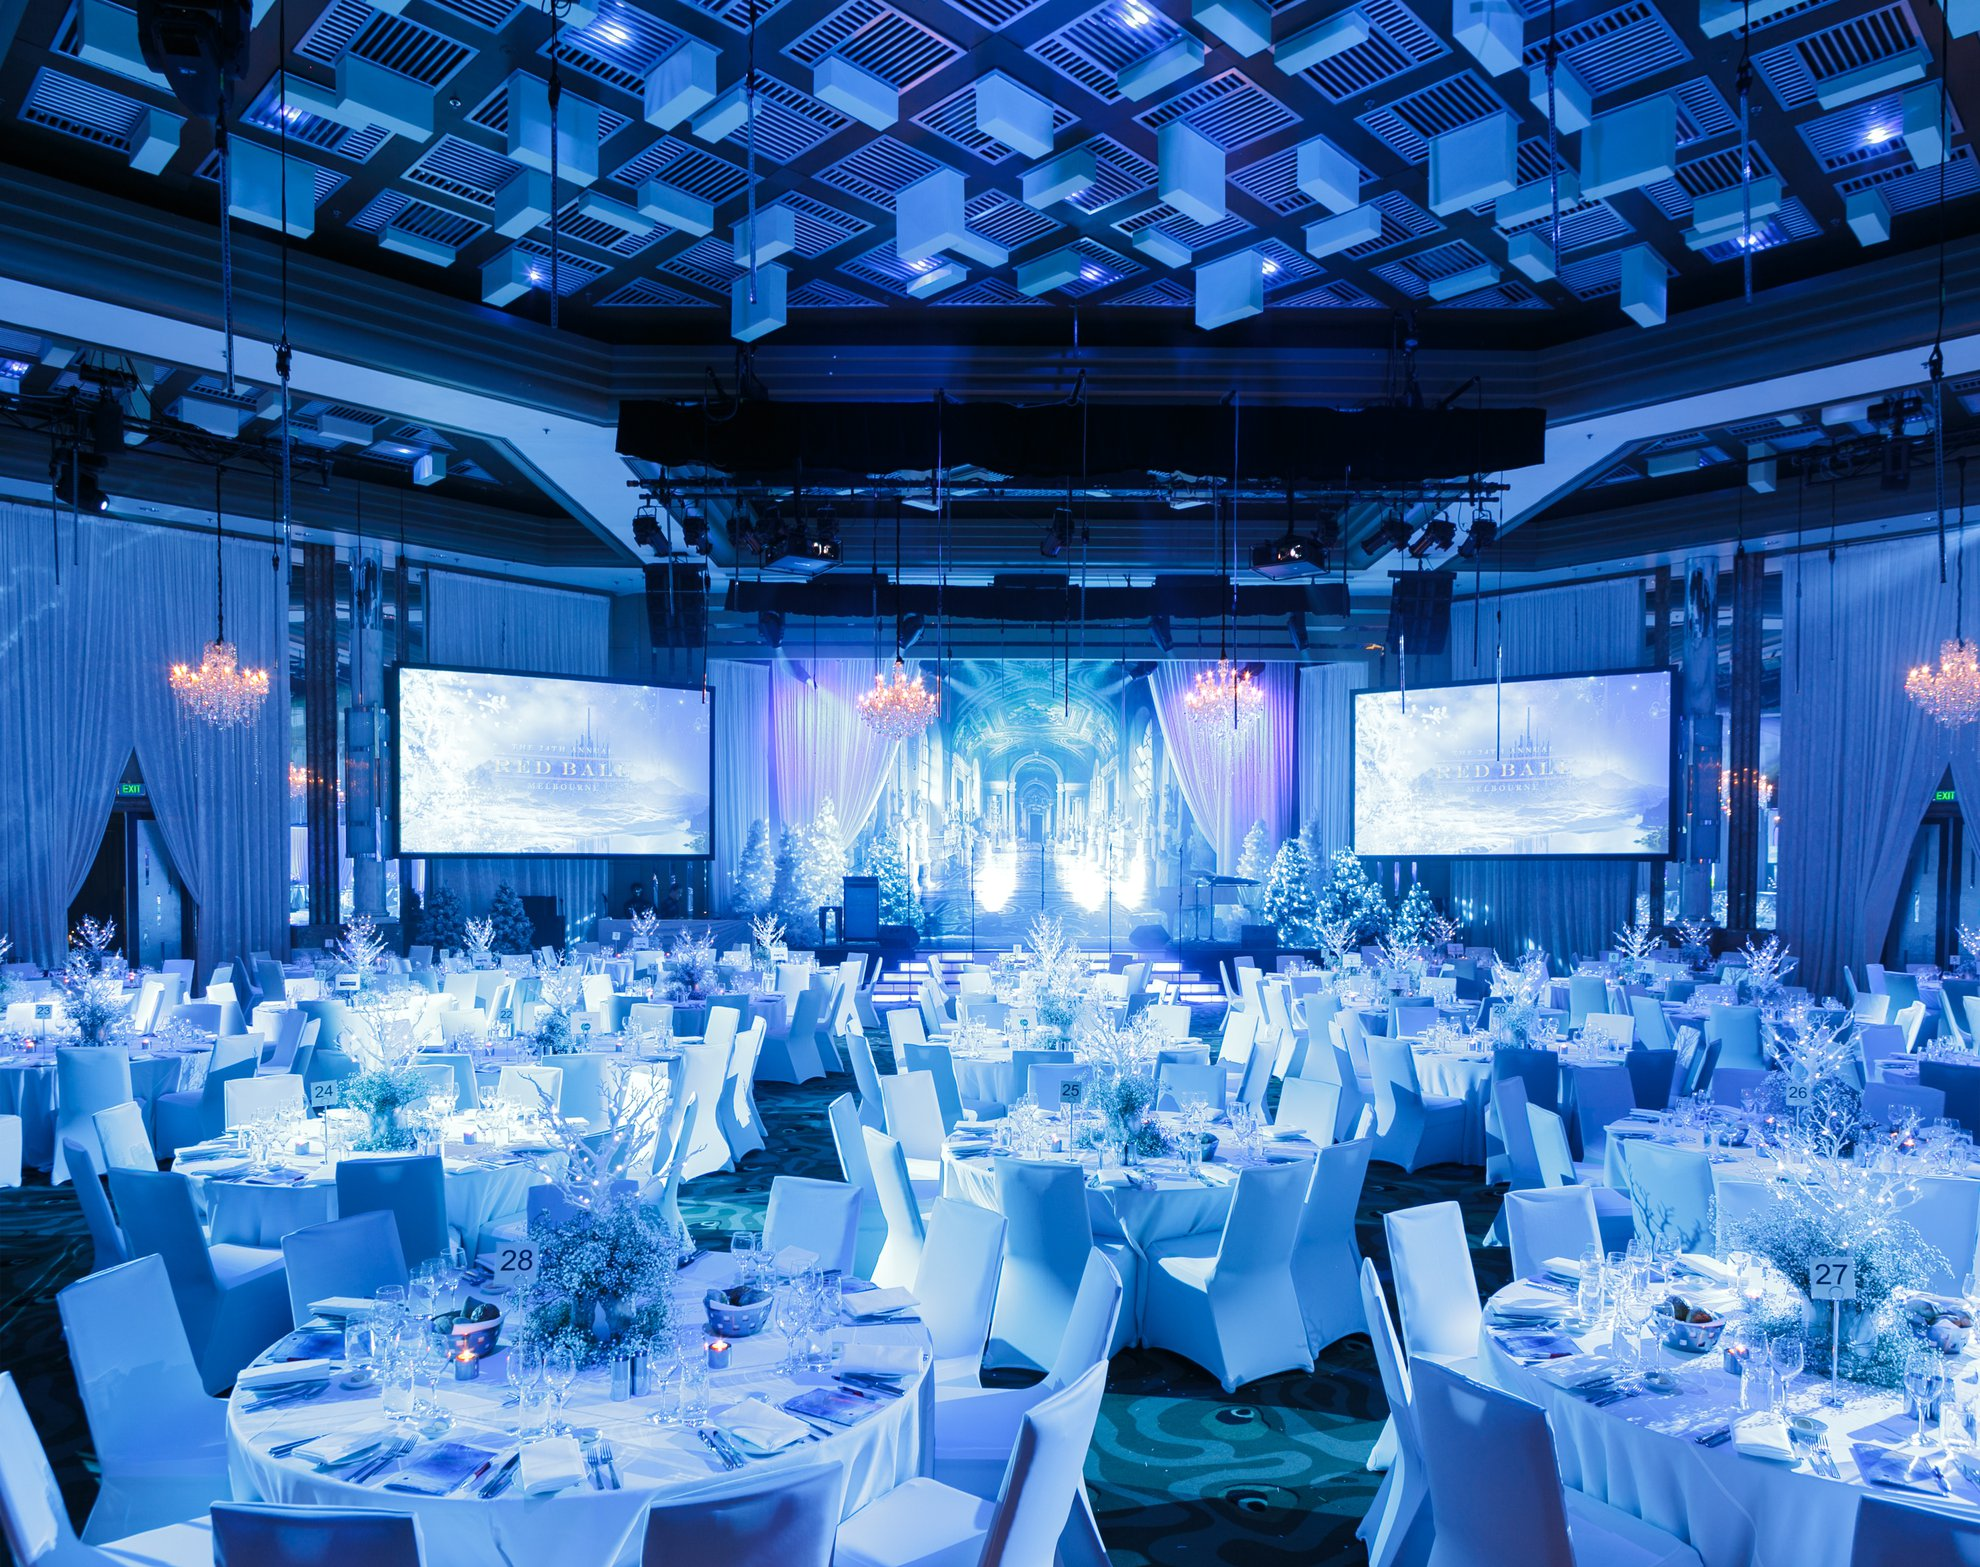 Blue Lighting in the Savoy Ballroom, Grand Hyatt Melbourne